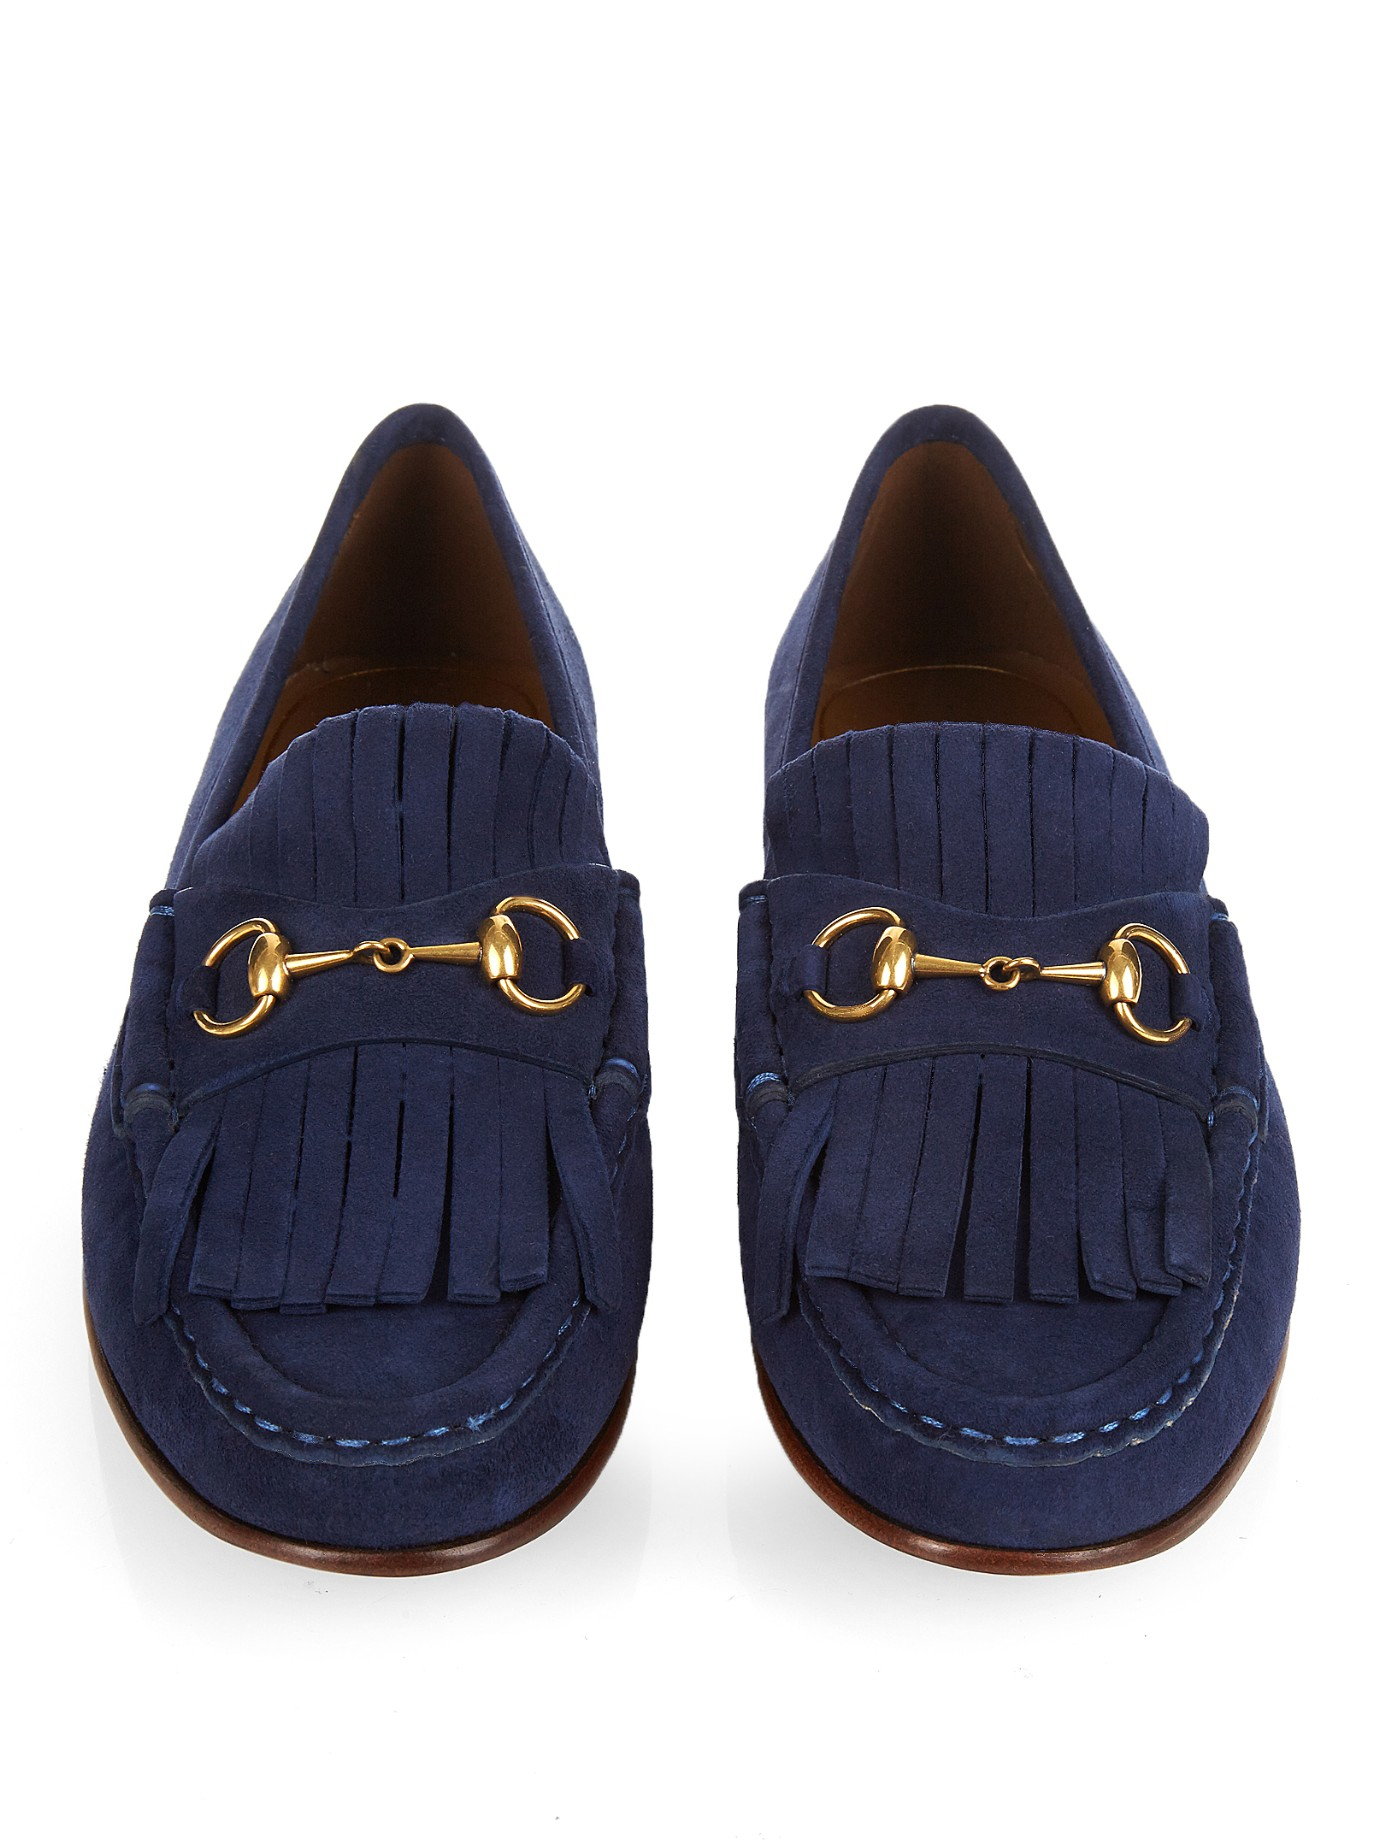 lyst gucci horsebit suede loafers in blue. Black Bedroom Furniture Sets. Home Design Ideas